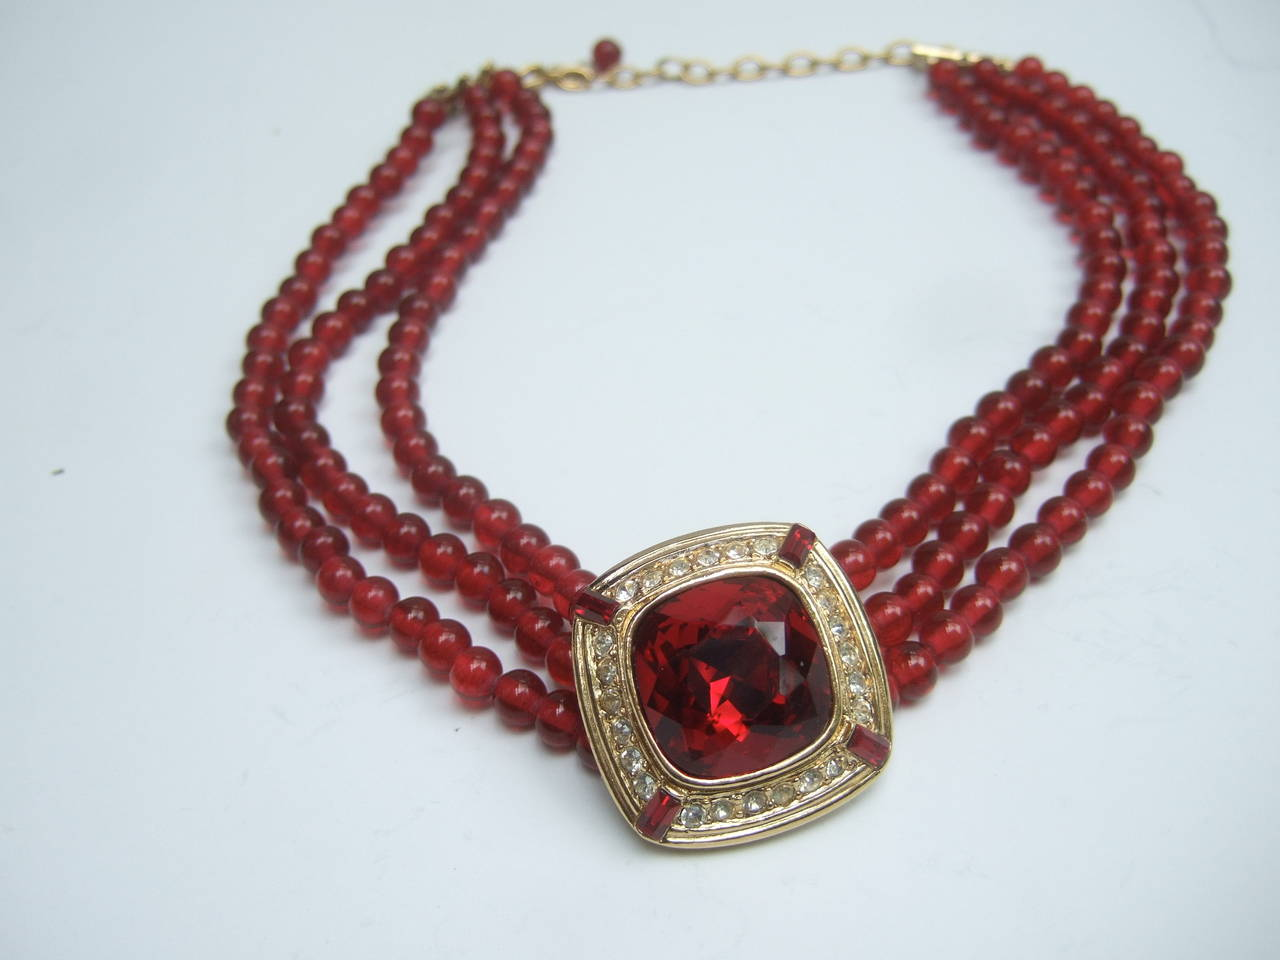 Trifari Elegant Ruby Glass Beaded Choker Necklace c 1980 For Sale 4